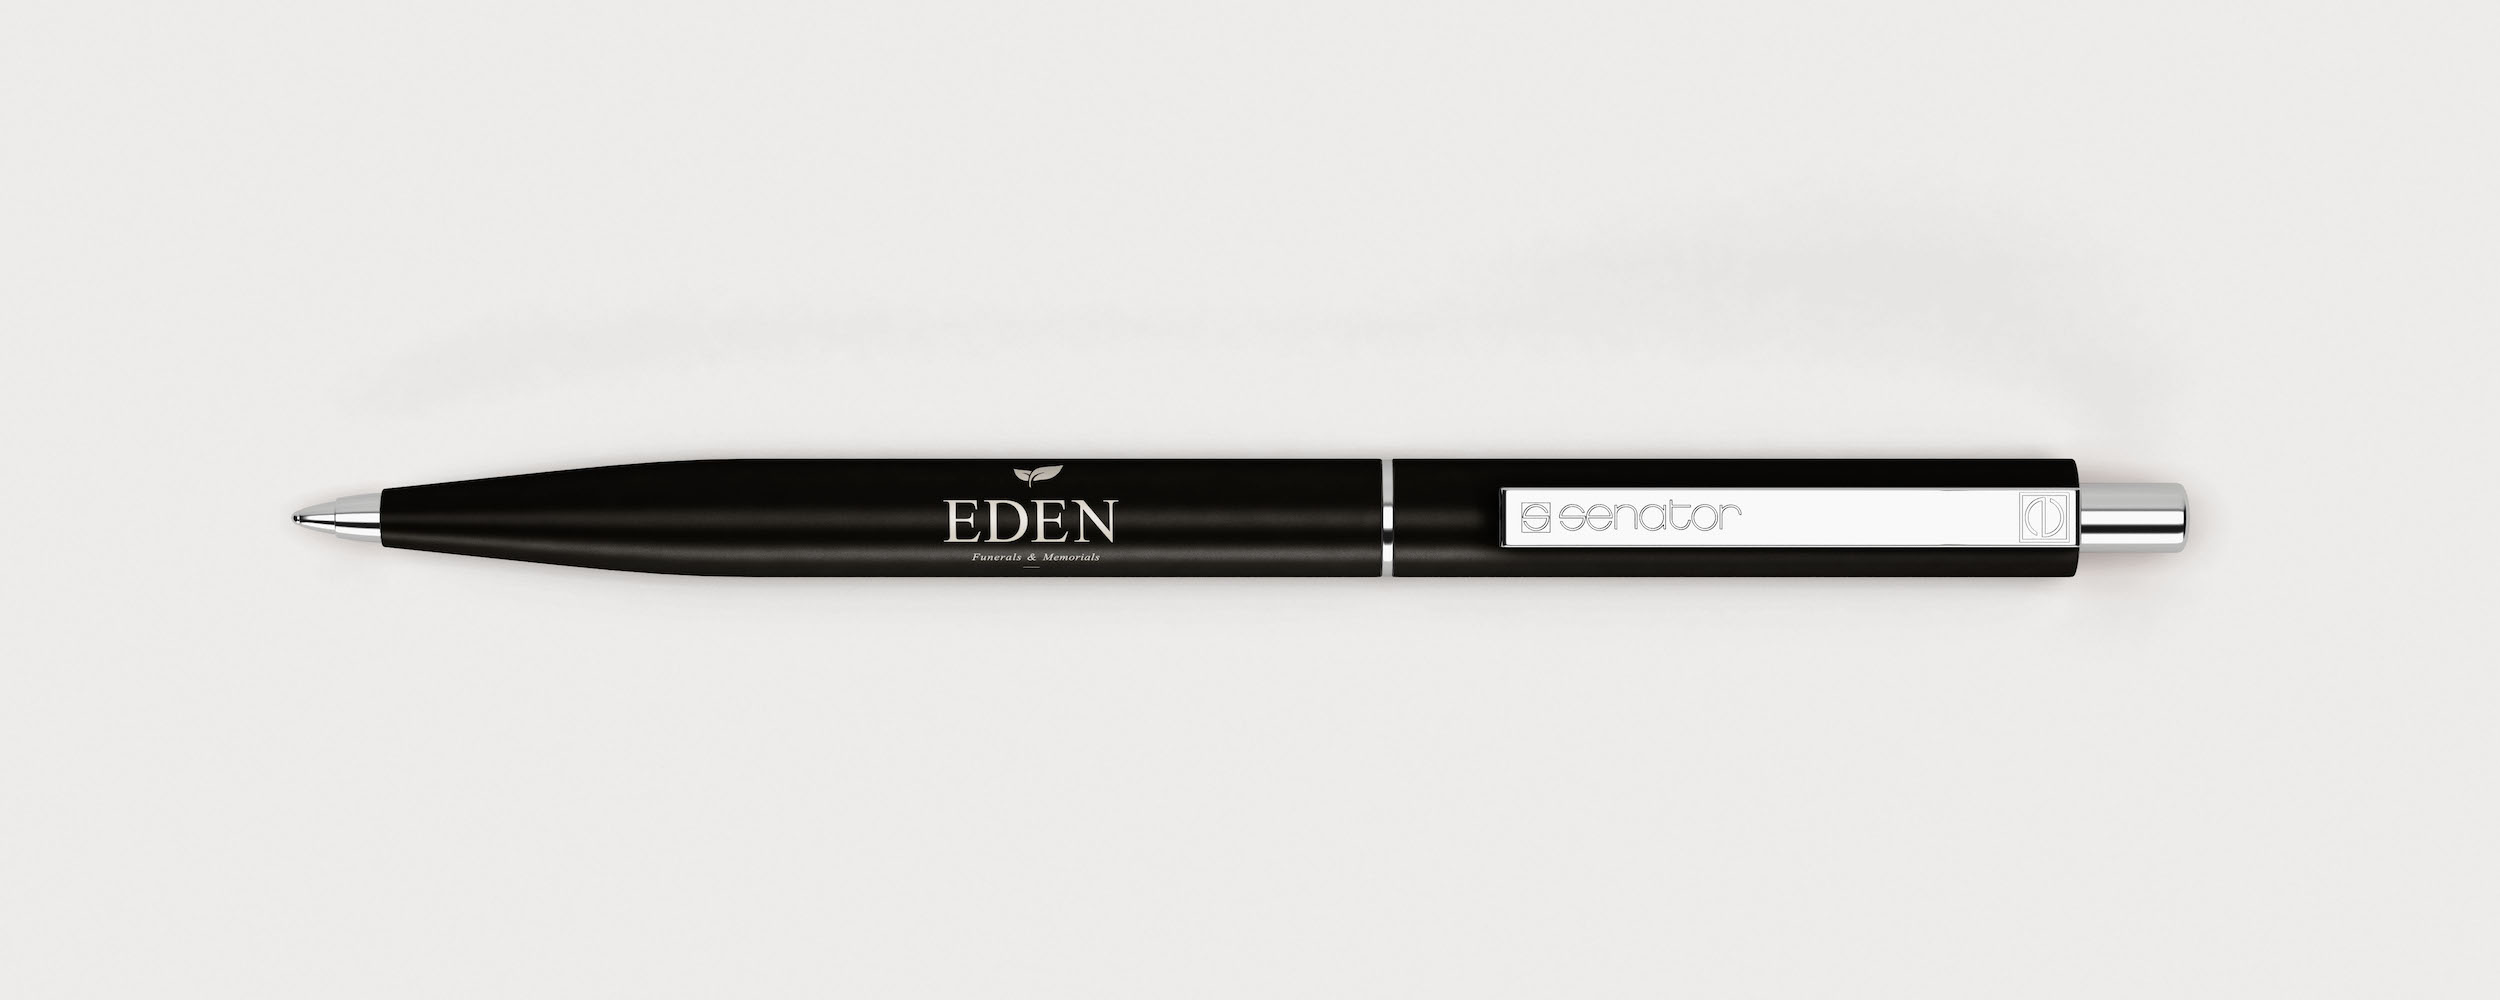 Promotional pen for funerals & memorials service Eden